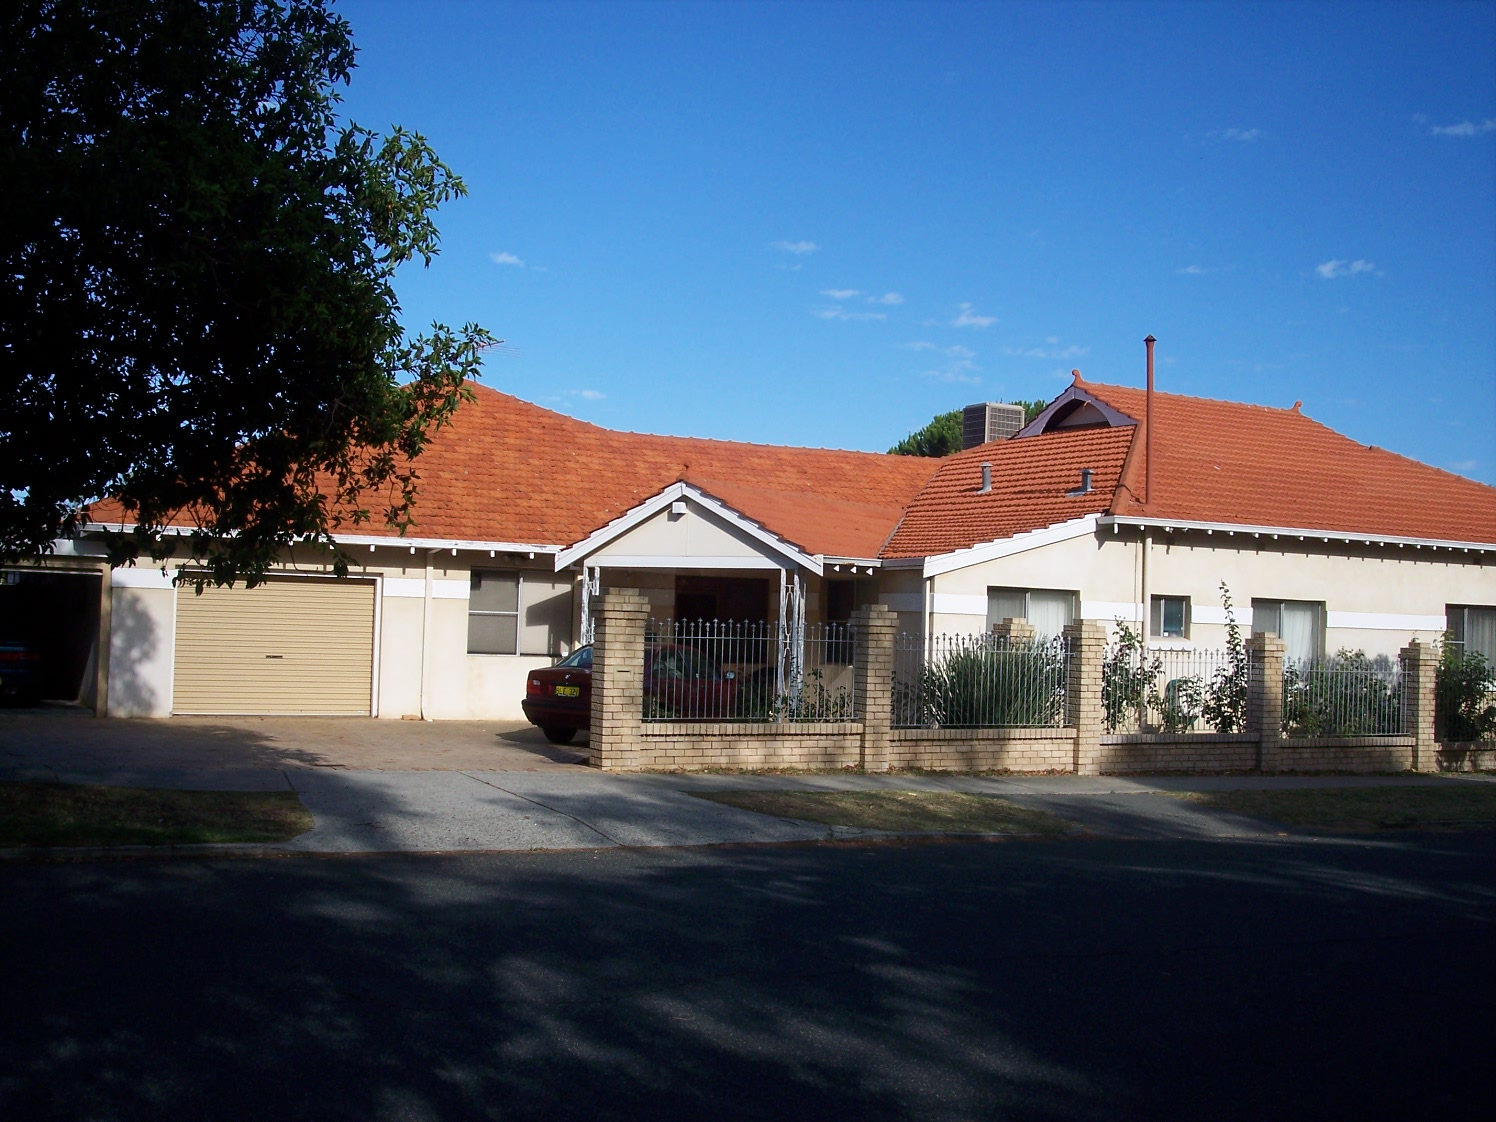 25-1-07 View W 183 Canning Highway.jpg